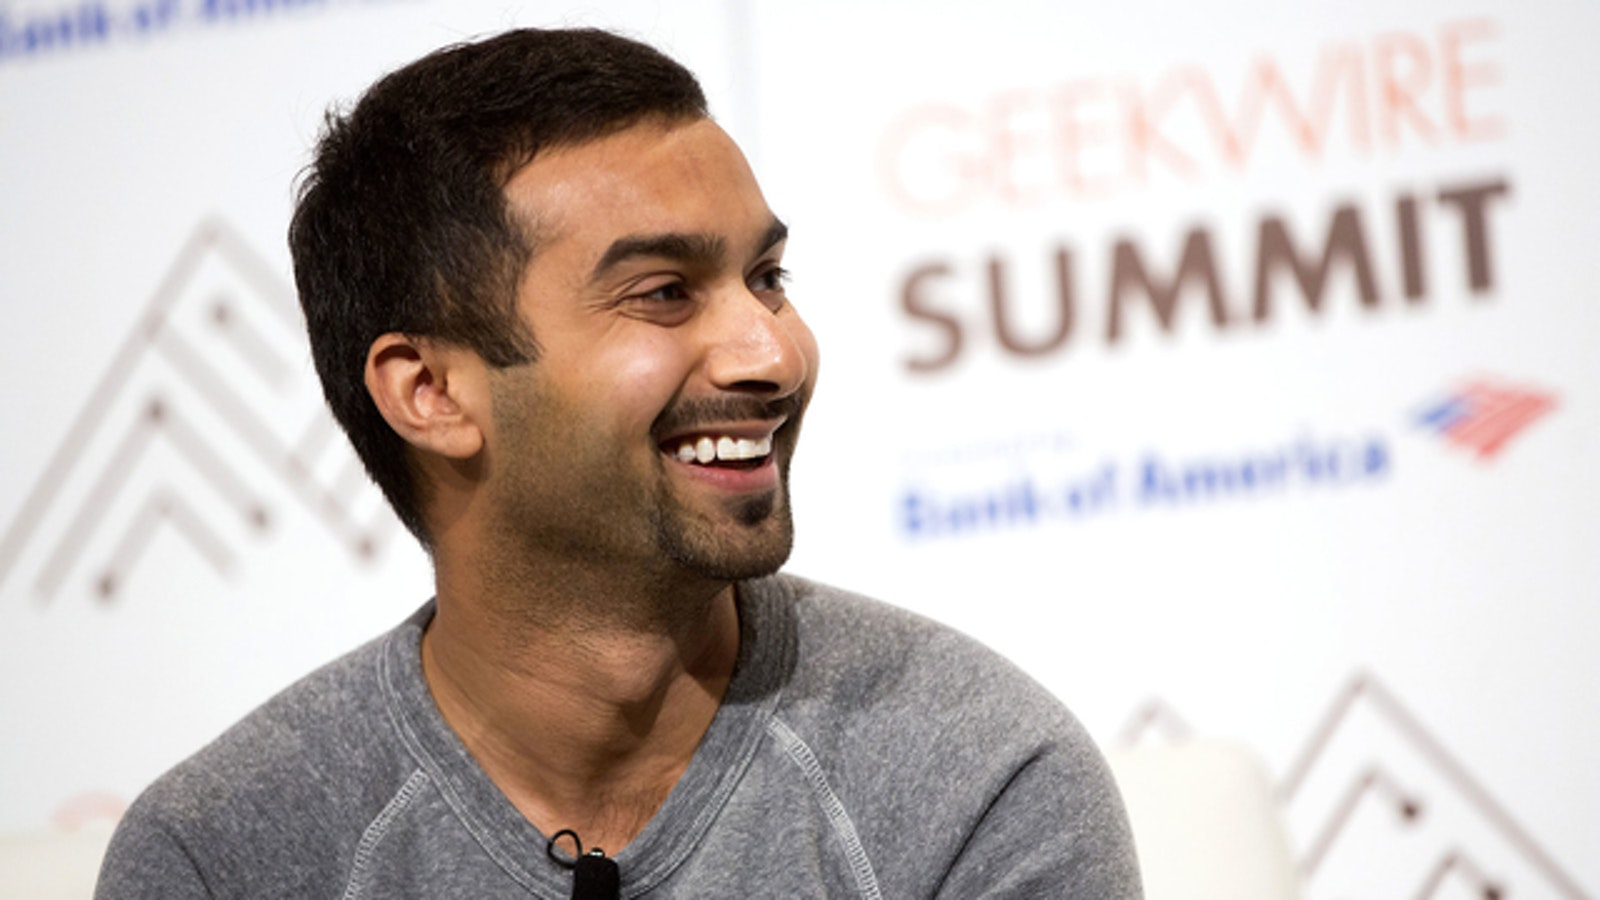 Instacart's founder/CEO Apoorva Mehta. Photo by Bloomberg.